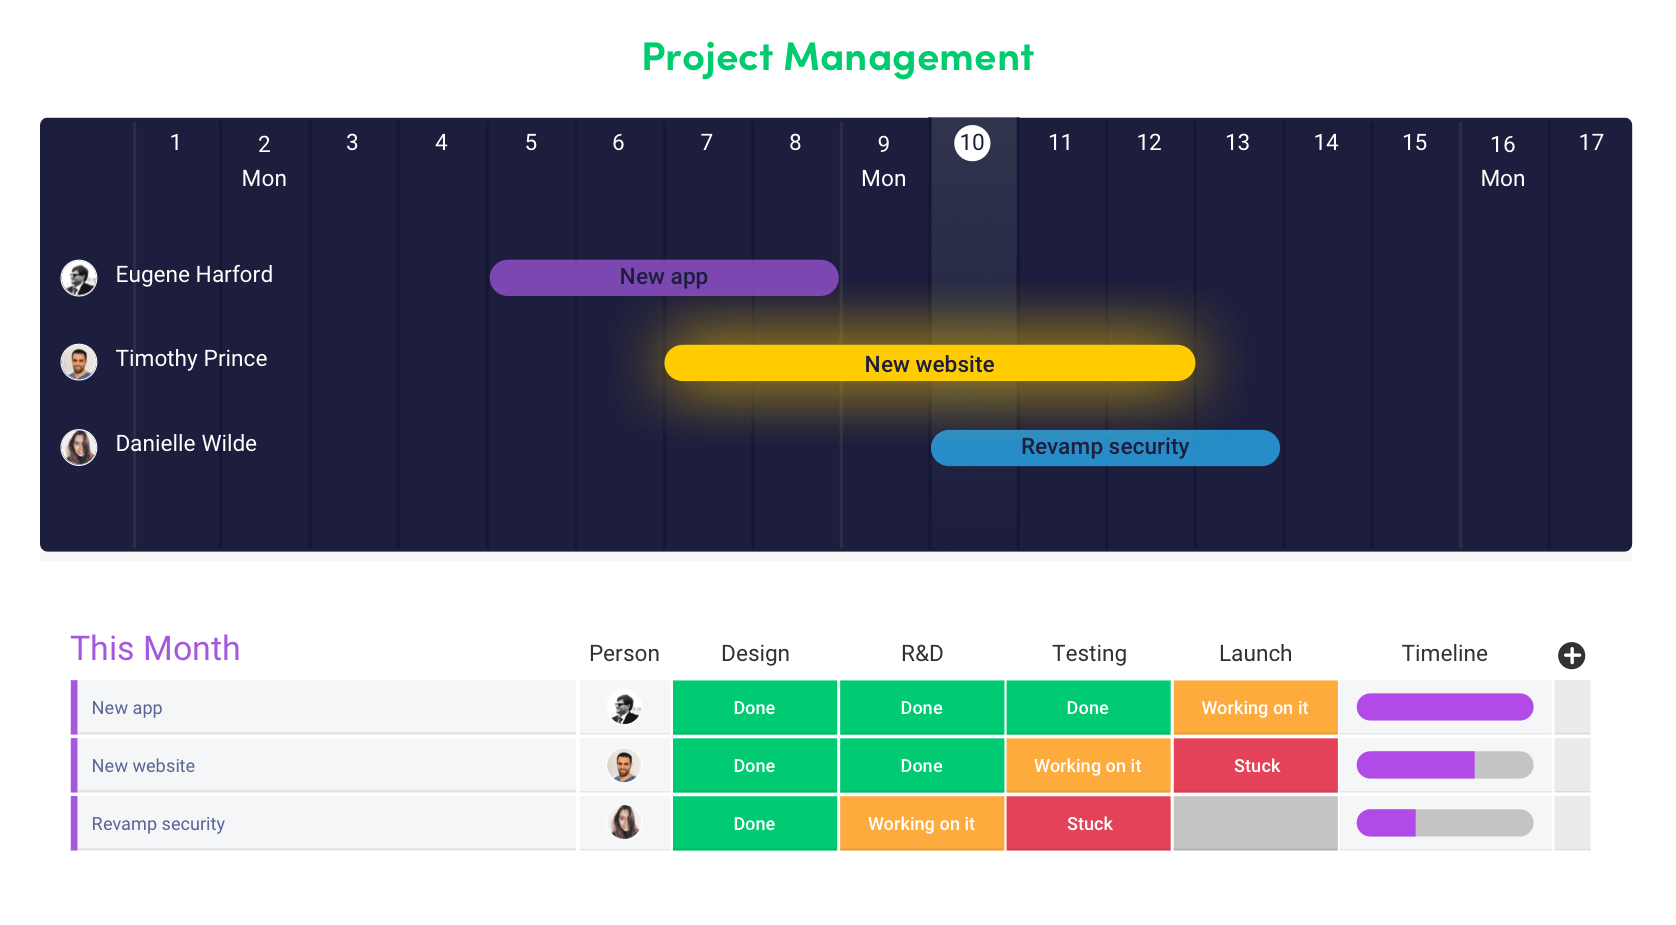 a3bf18ea-5ff2-4c4e-ba36-4f25224e6ecc_Timeline_v4tqhf Use monday.com to Boost Project Organization and Team Collaboration design tips